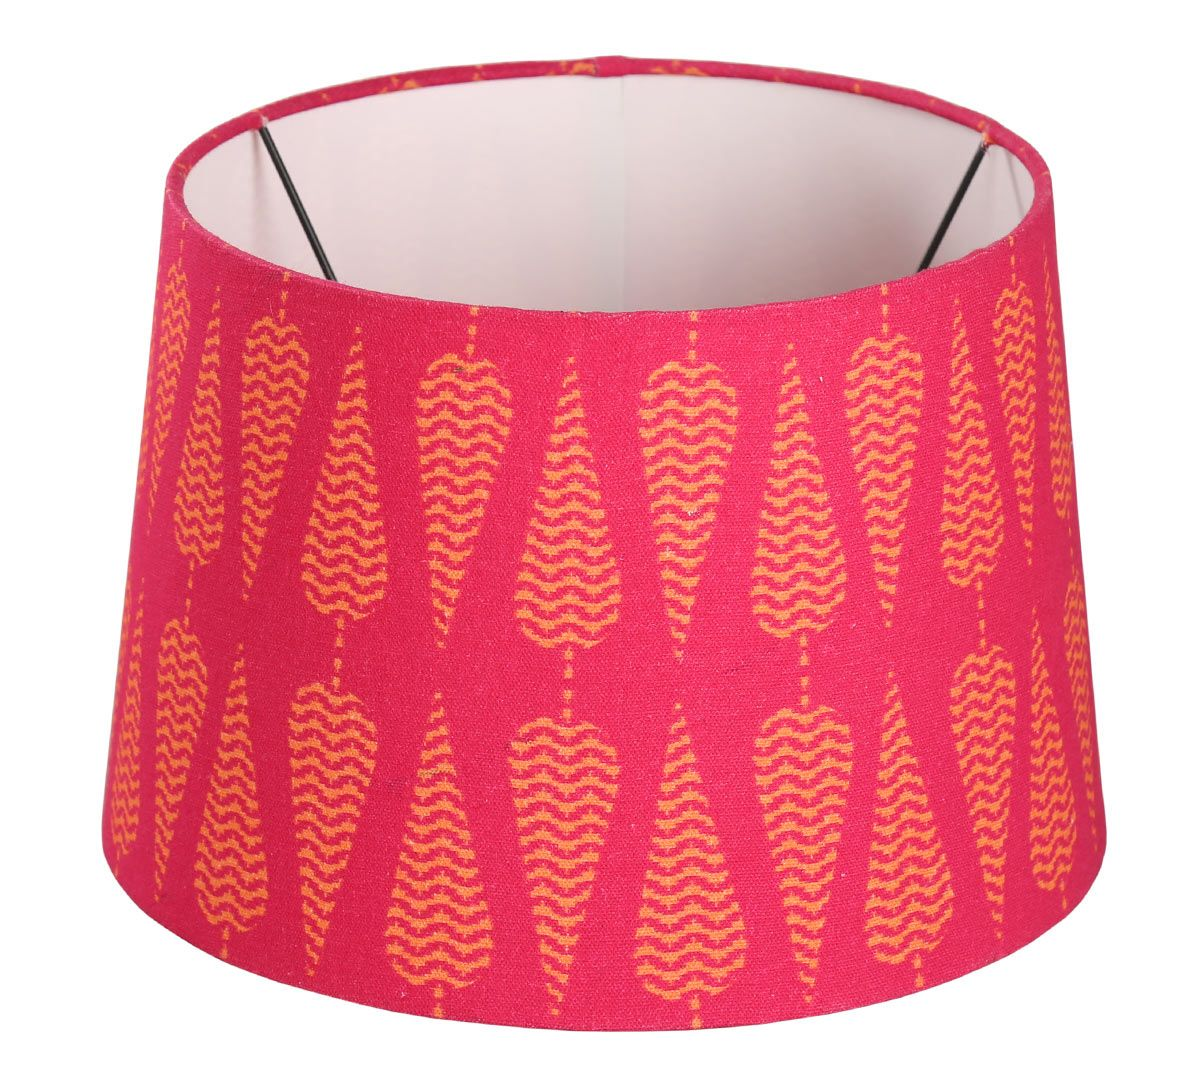 India Circus Conifer Spades Conical Lamp Shade